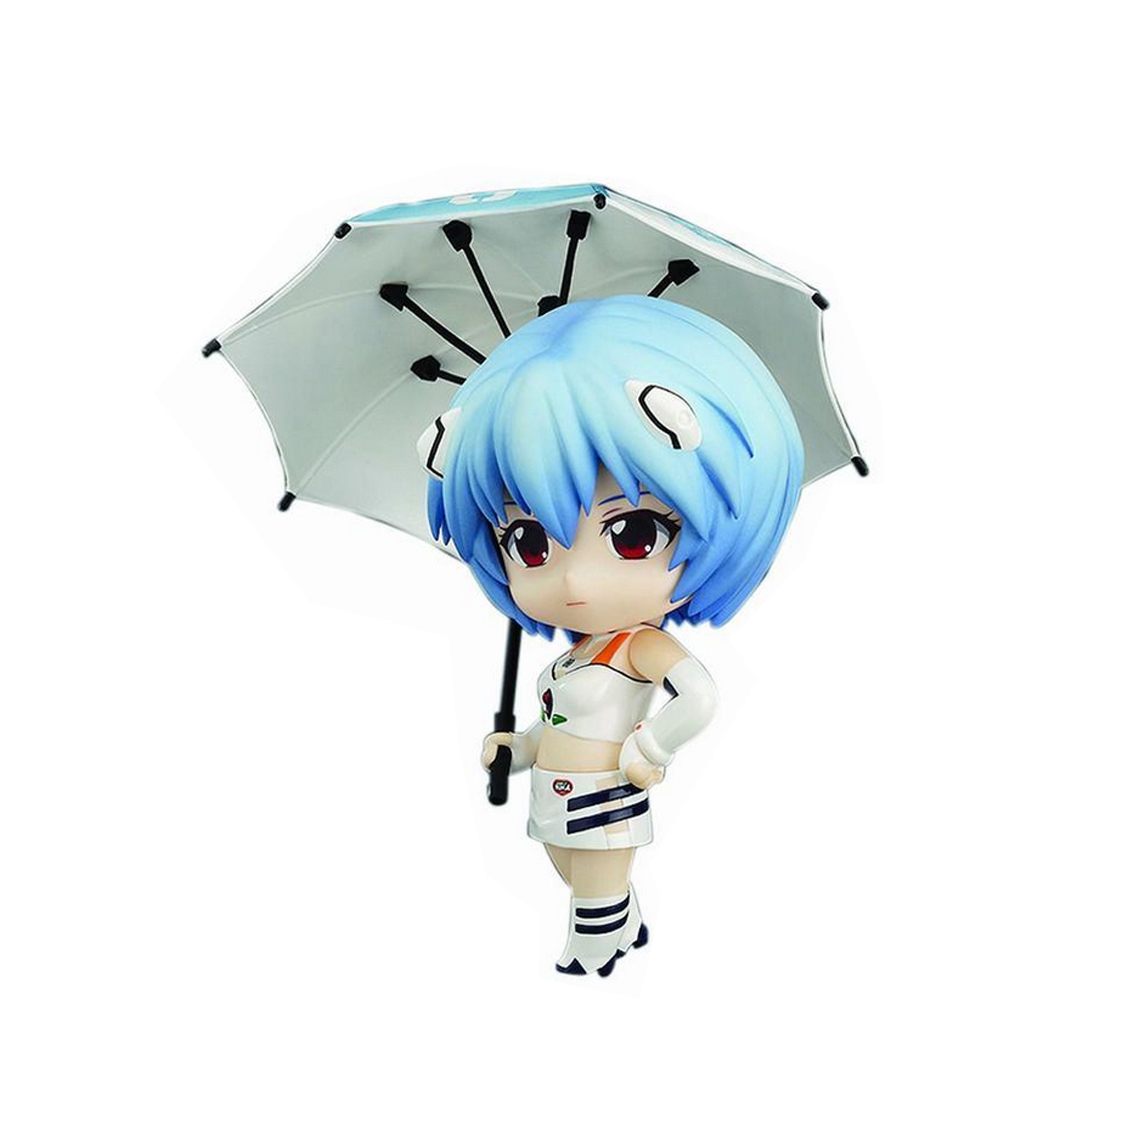 Chanycore GSC Nendoroid 467# EVA Evangelion Ayanami Rei EVANGELION RACING Ver Action Figure Collection Model Toy 10cm 4'' pratical musical instrument portable pockets acoustic guitar practice tool gadget 6 string 4 fret model for beginners hot sale